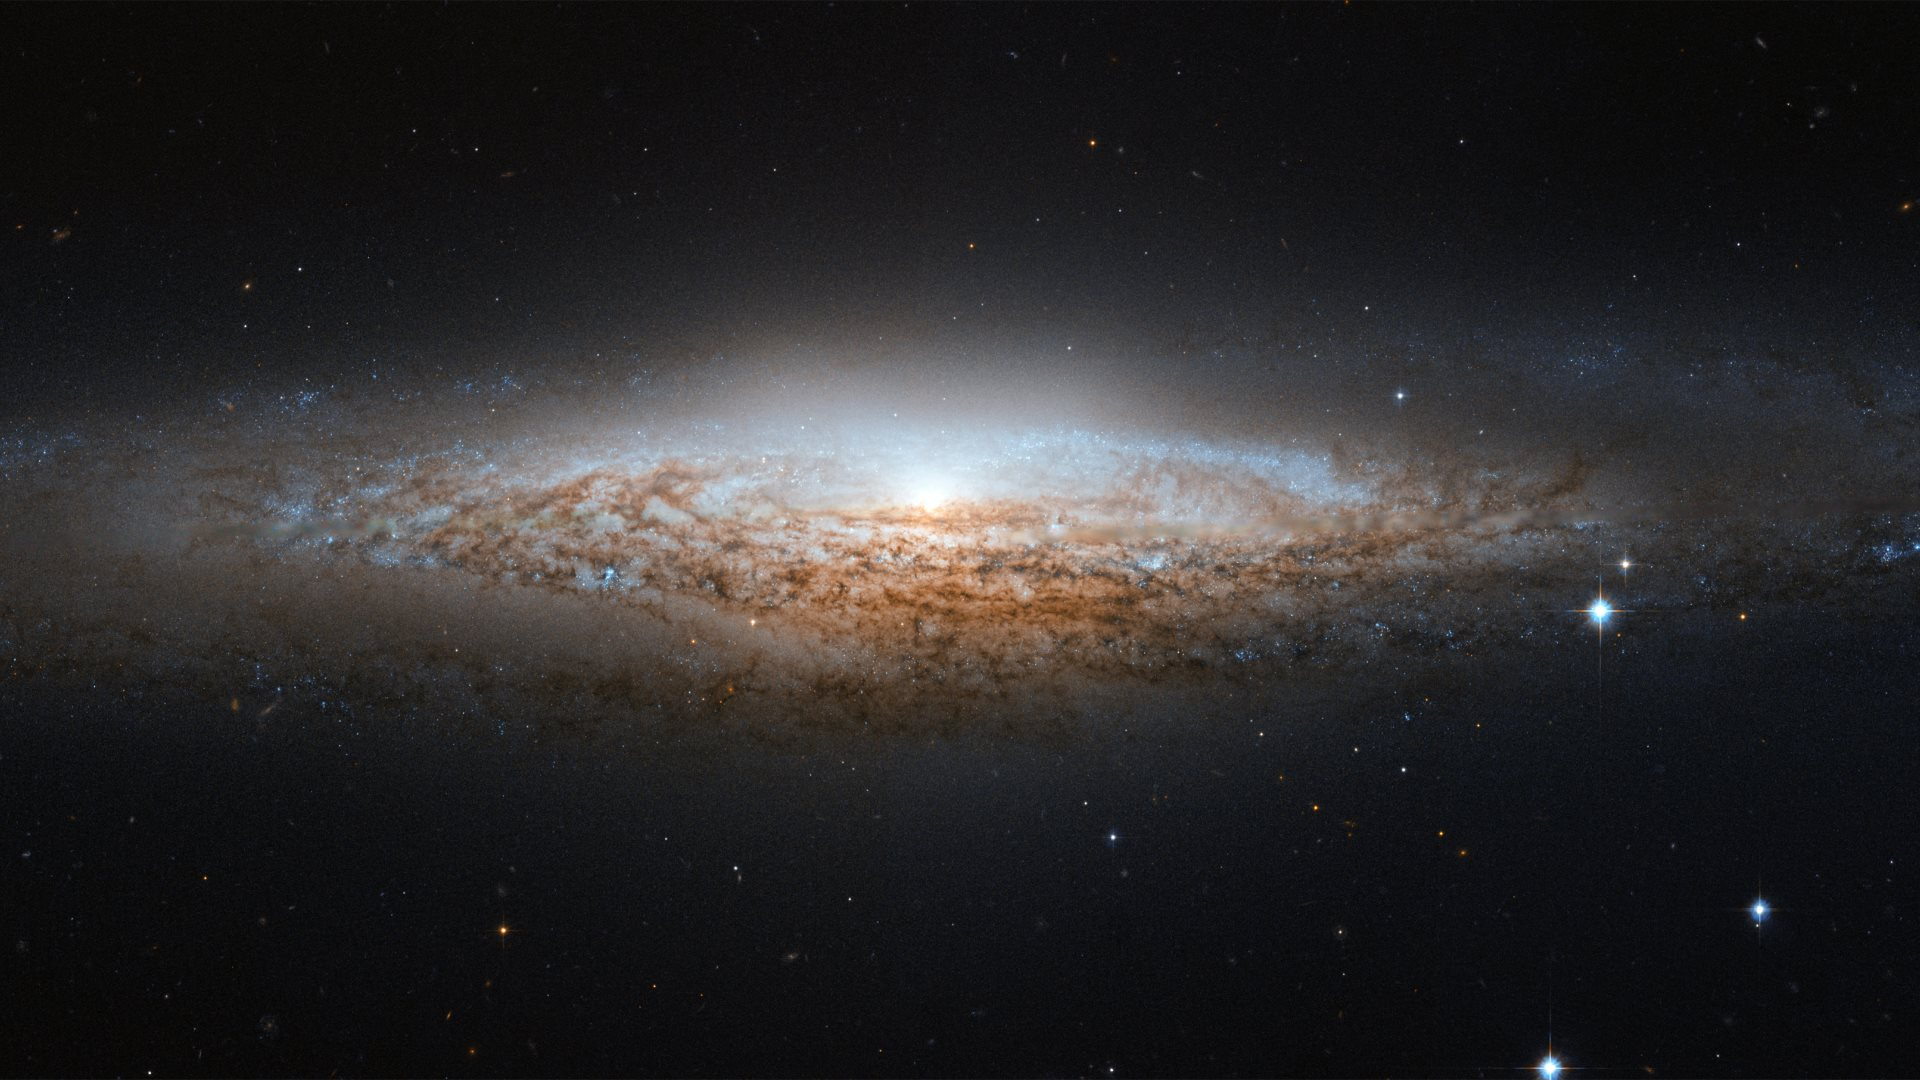 hubble universe hd - photo #19